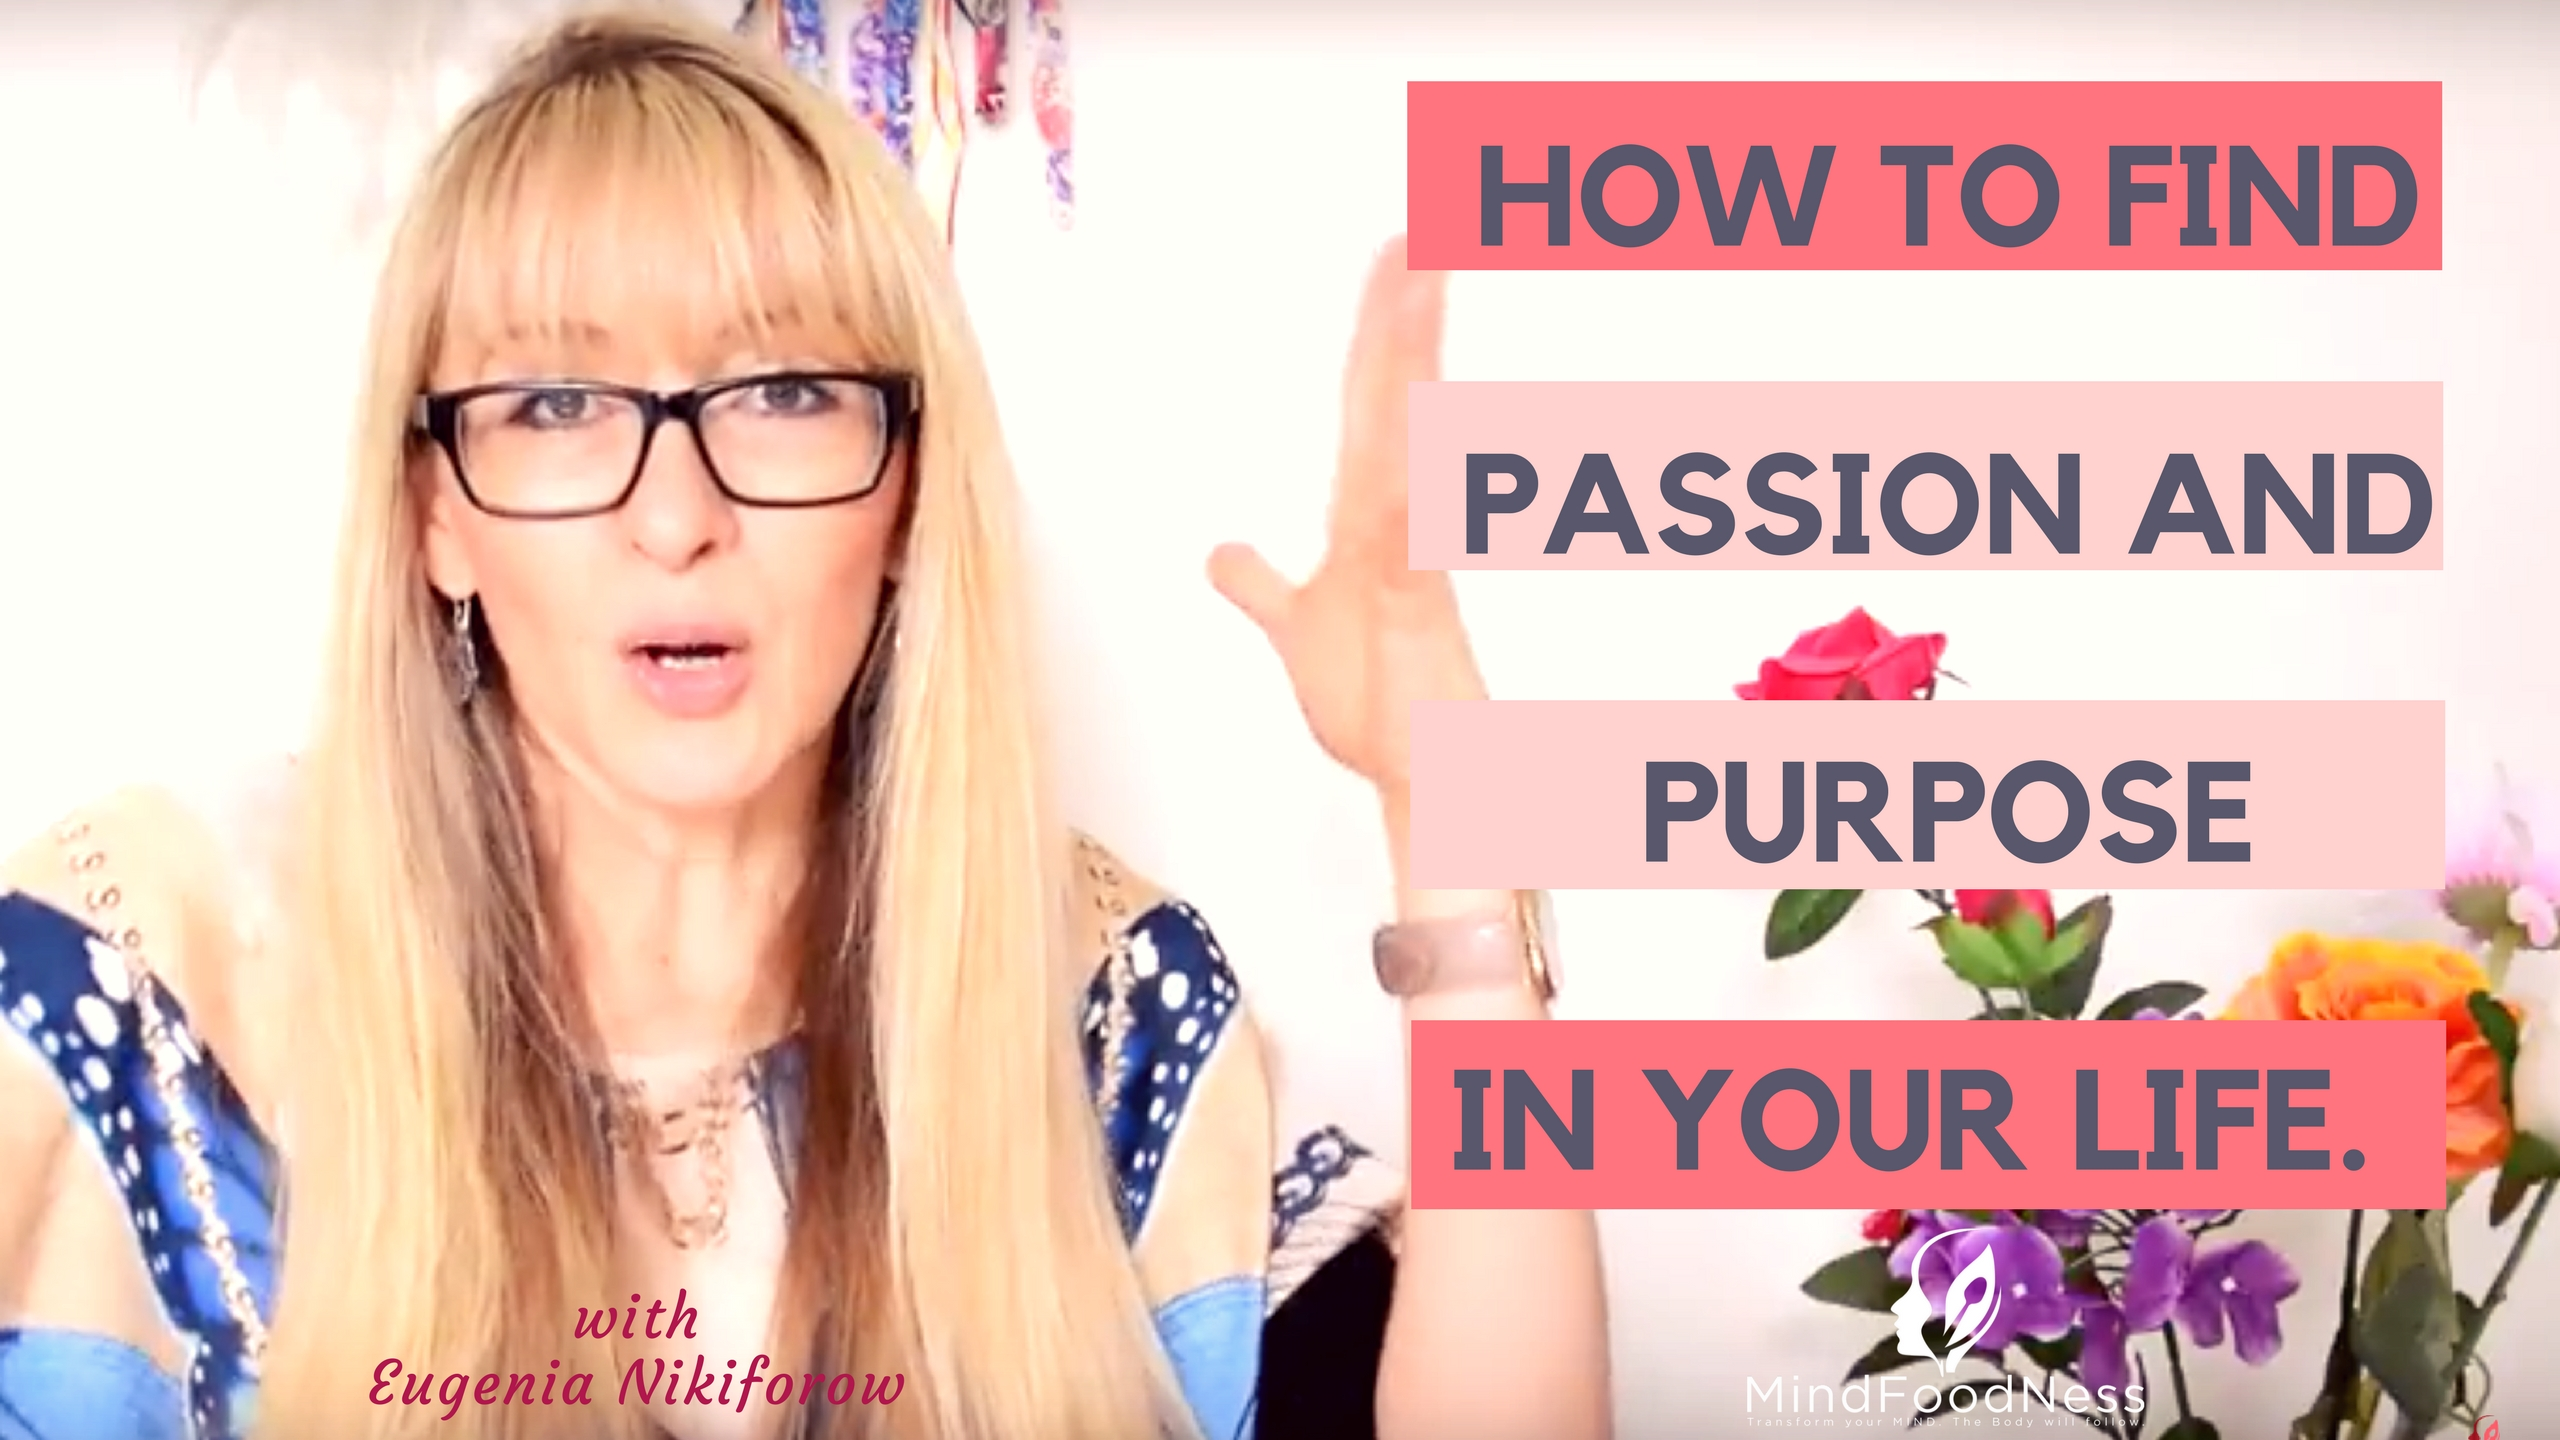 Nutrition|Weight Loss|Eating Psychology passion-and-purpose Business Goals Happiness Mindfulness